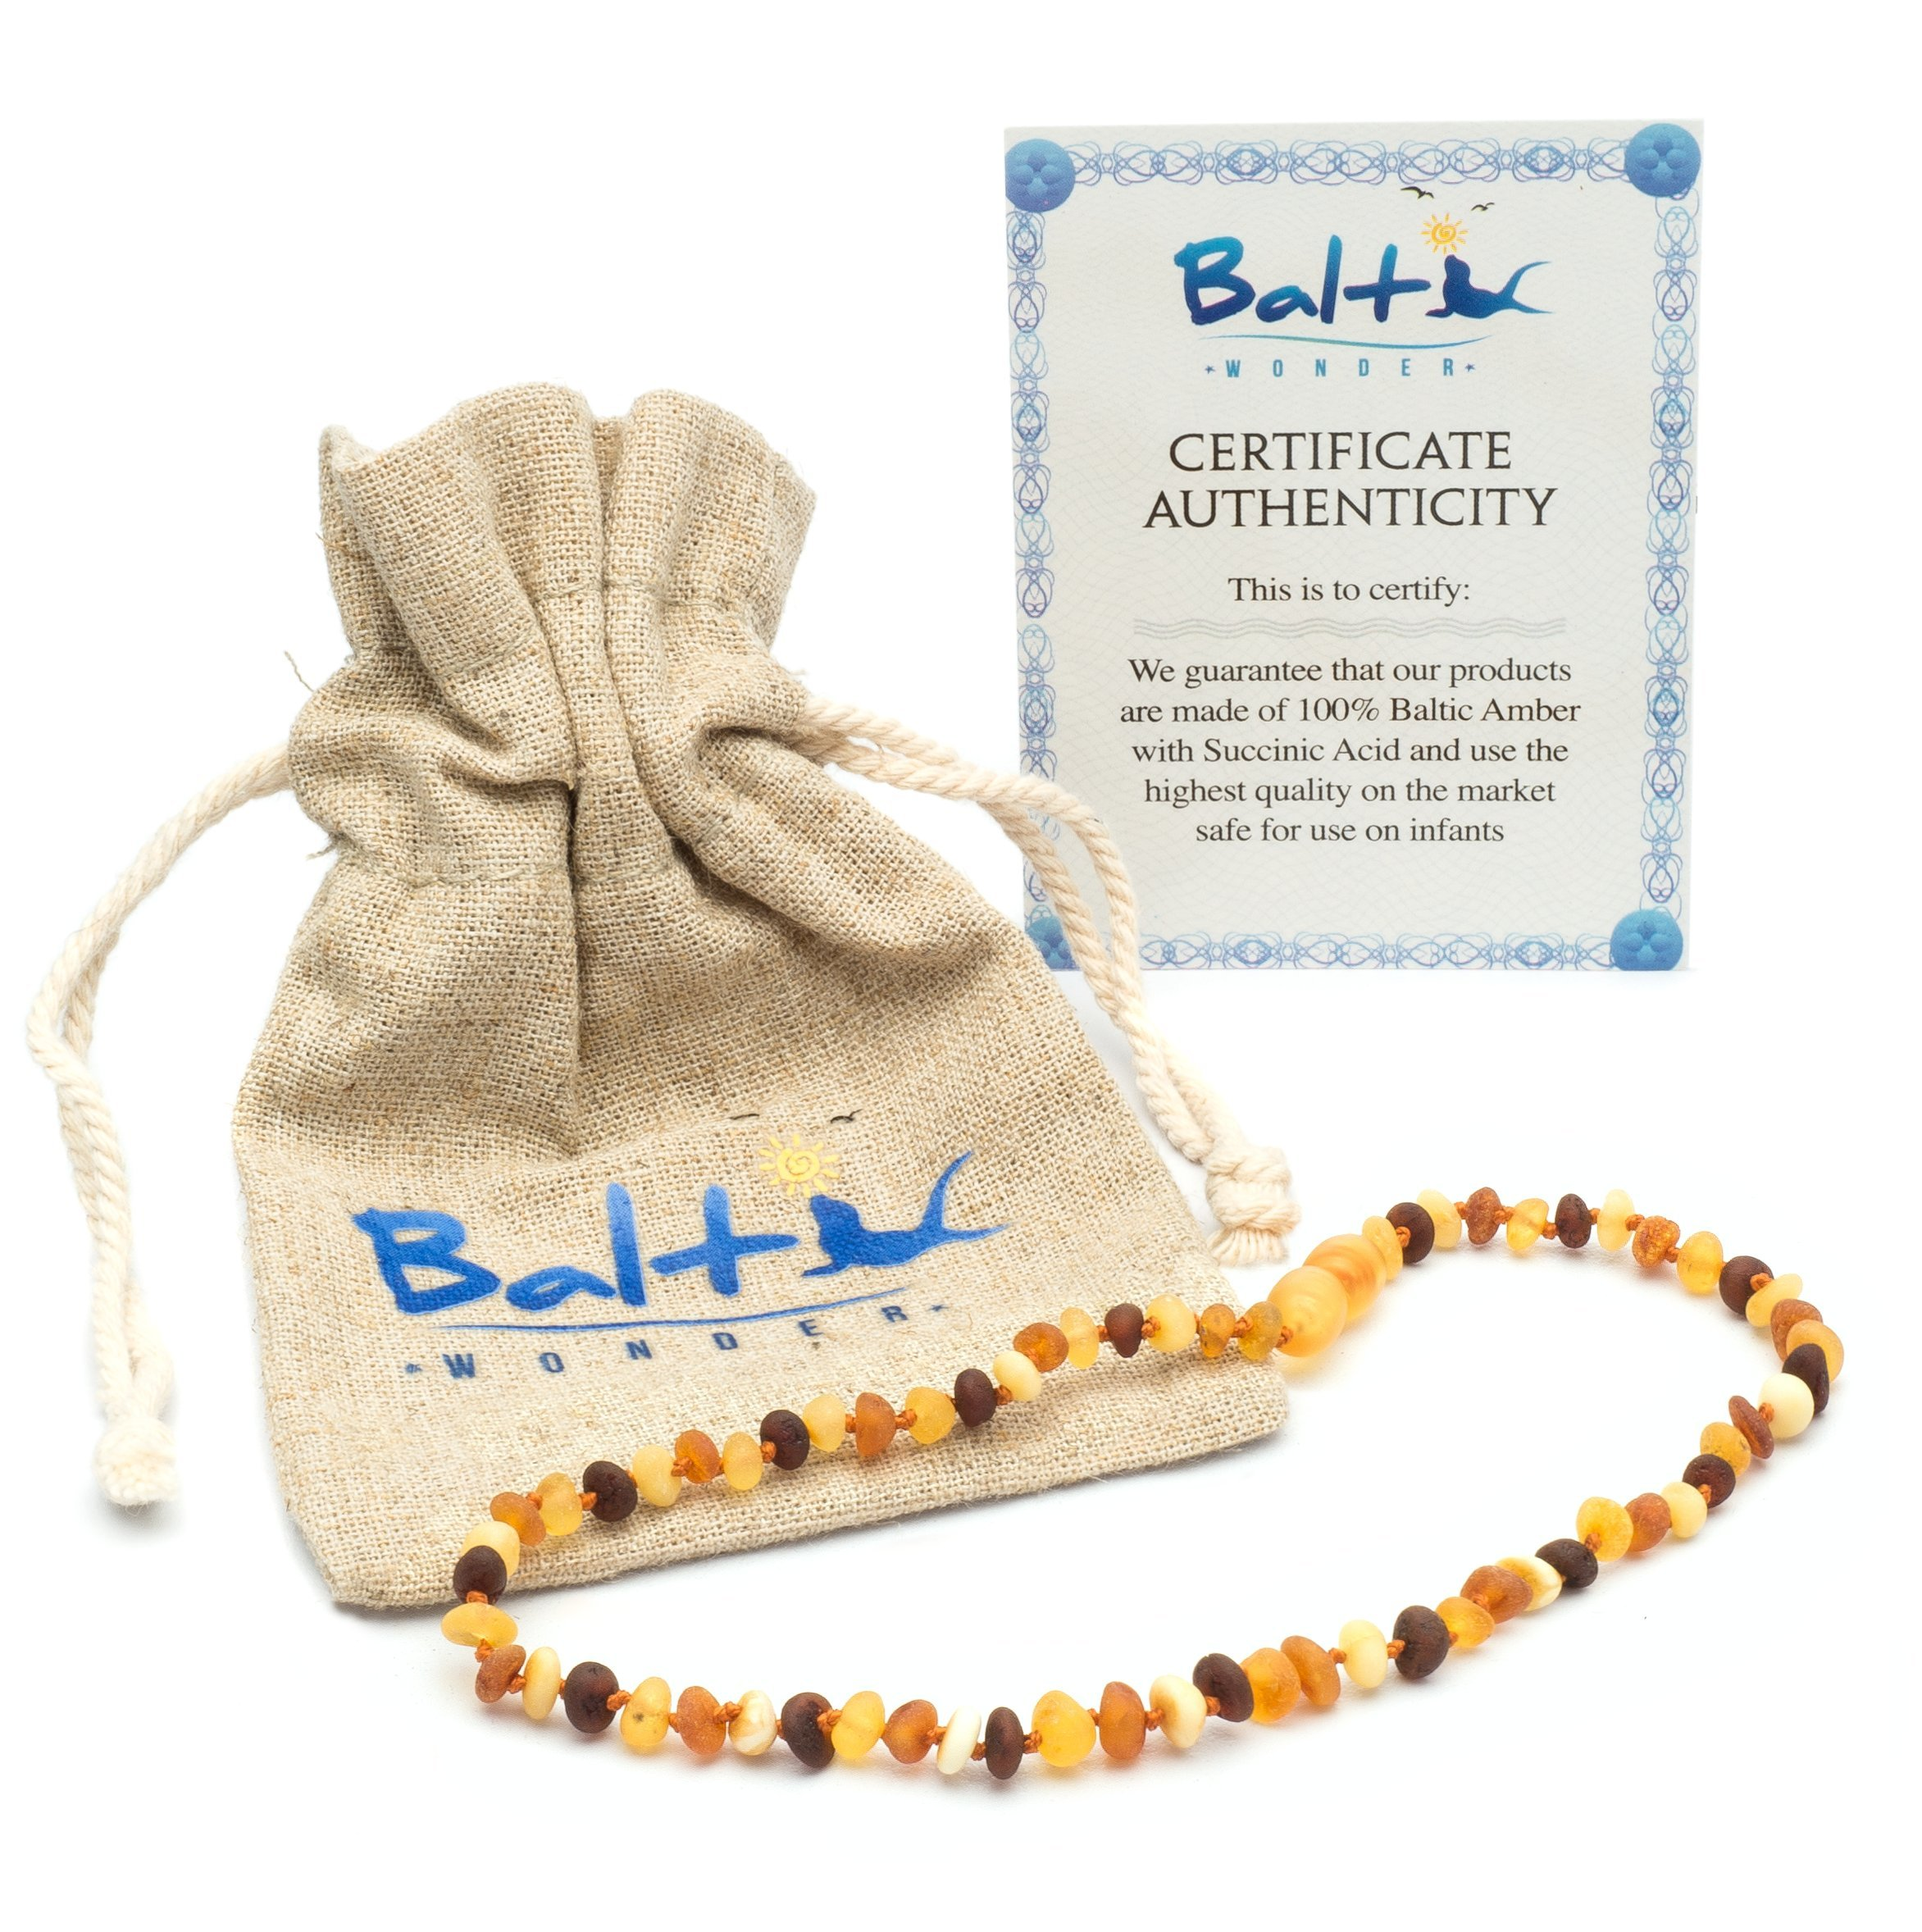 Raw Baltic Amber Teething Necklaces For Babies (Unisex) - Anti Flammatory, Drooling & Teething Pain Reduce Properties - Multi 4 Colors UNPOLISHED Natural Certificated with Highest Quality Guaranteed. by Baltic Wonder